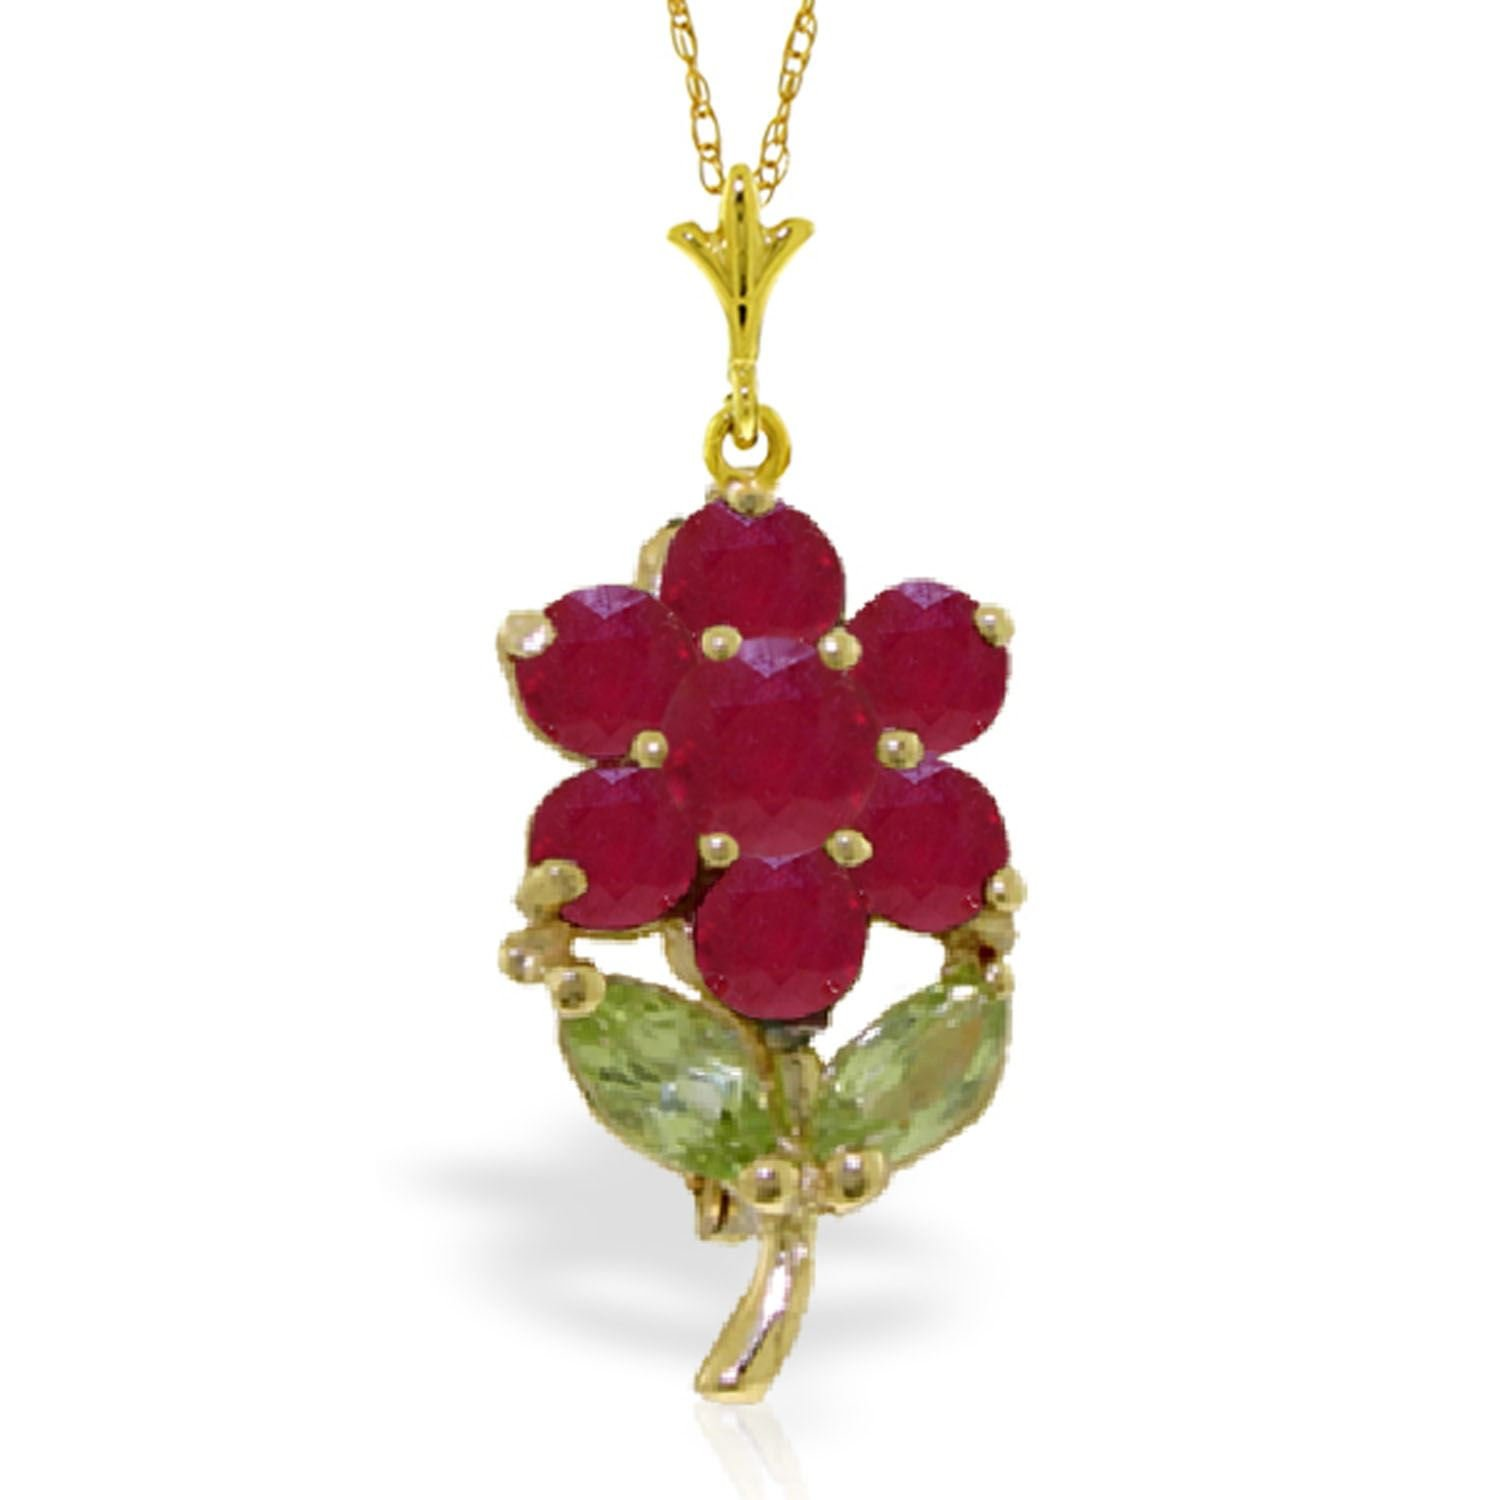 ALARRI 1.06 Carat 14K Solid Gold Fleur Ruby Peridot Necklace with 20 Inch Chain Length